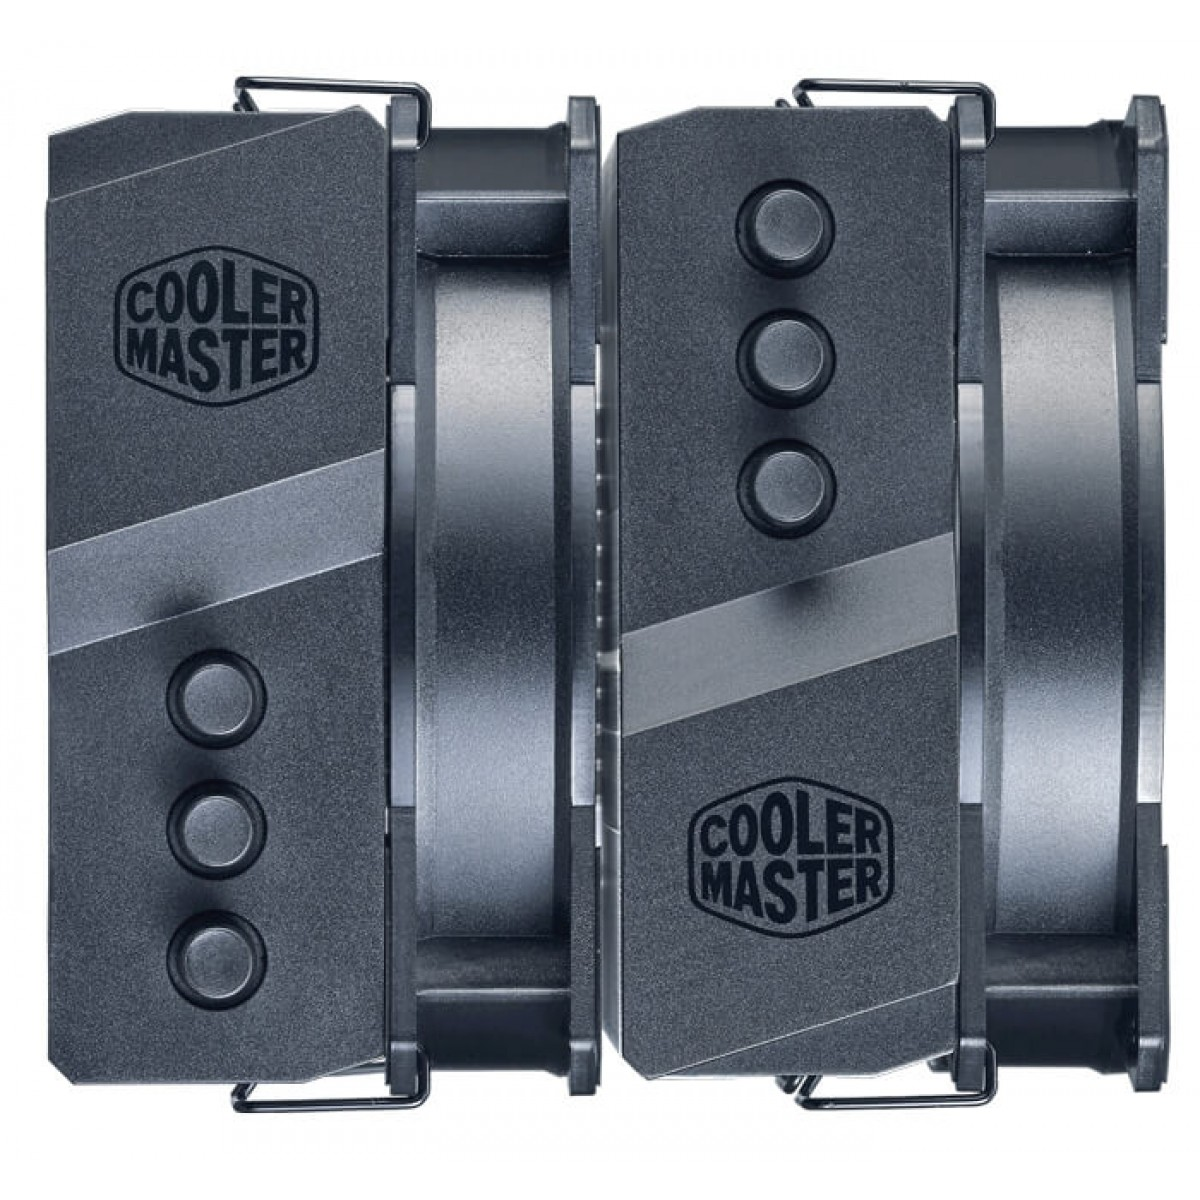 Cooler para Processador Cooler Master Masterair MA620P RGB 120mm, Intel-AMD, MAP-D6PN-218PC-R1